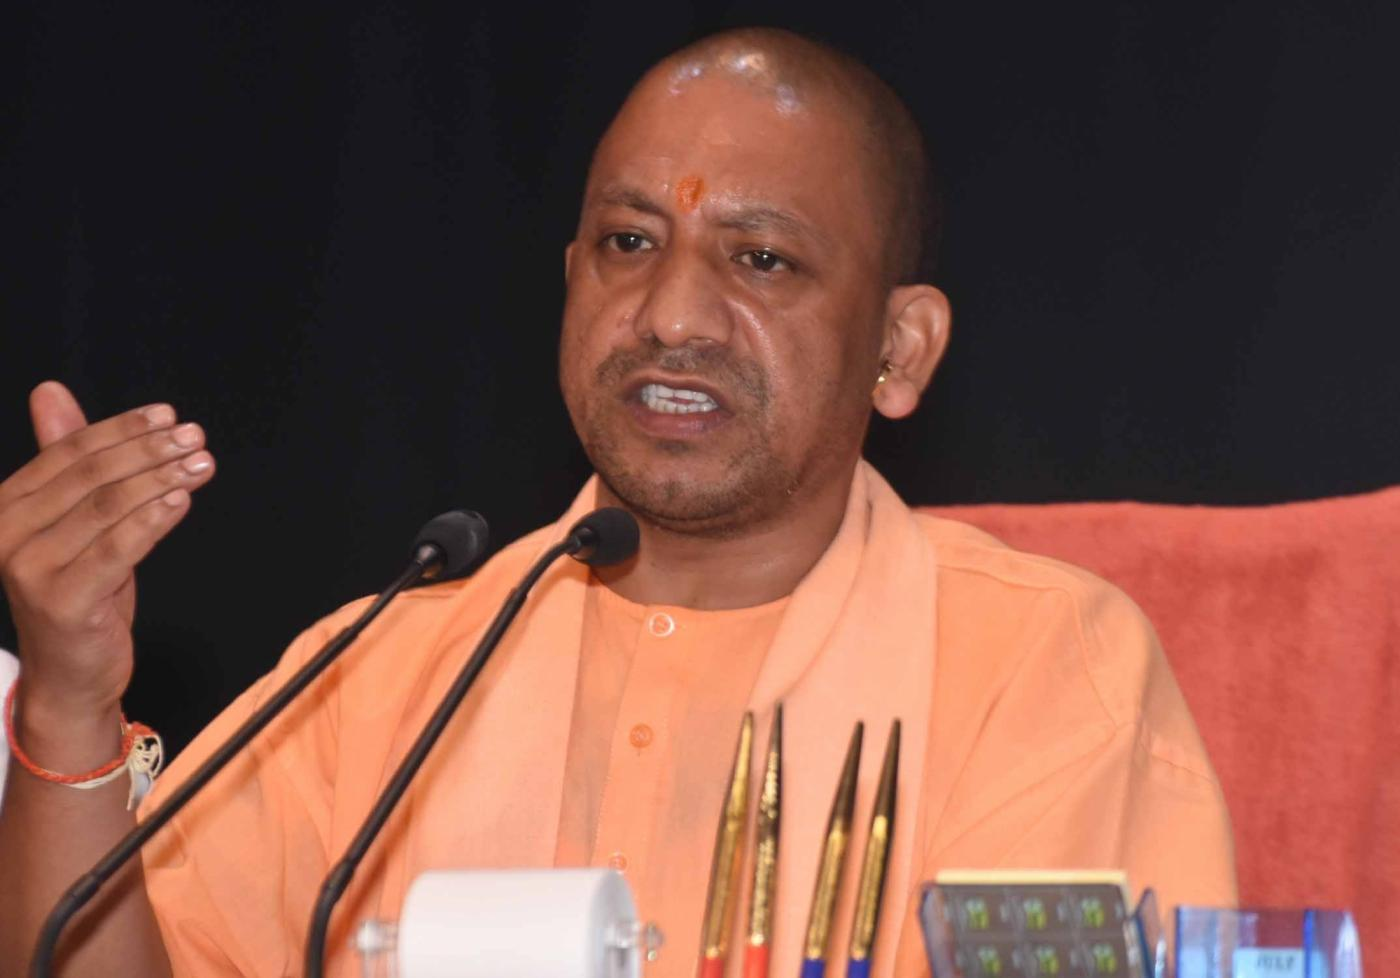 Lucknow: Uttar Pradesh Chief Minister Yogi Adityanath addresses during a cabinet briefing, in Lucknow on Sept 25, 2018. (Photo: IANS) by .